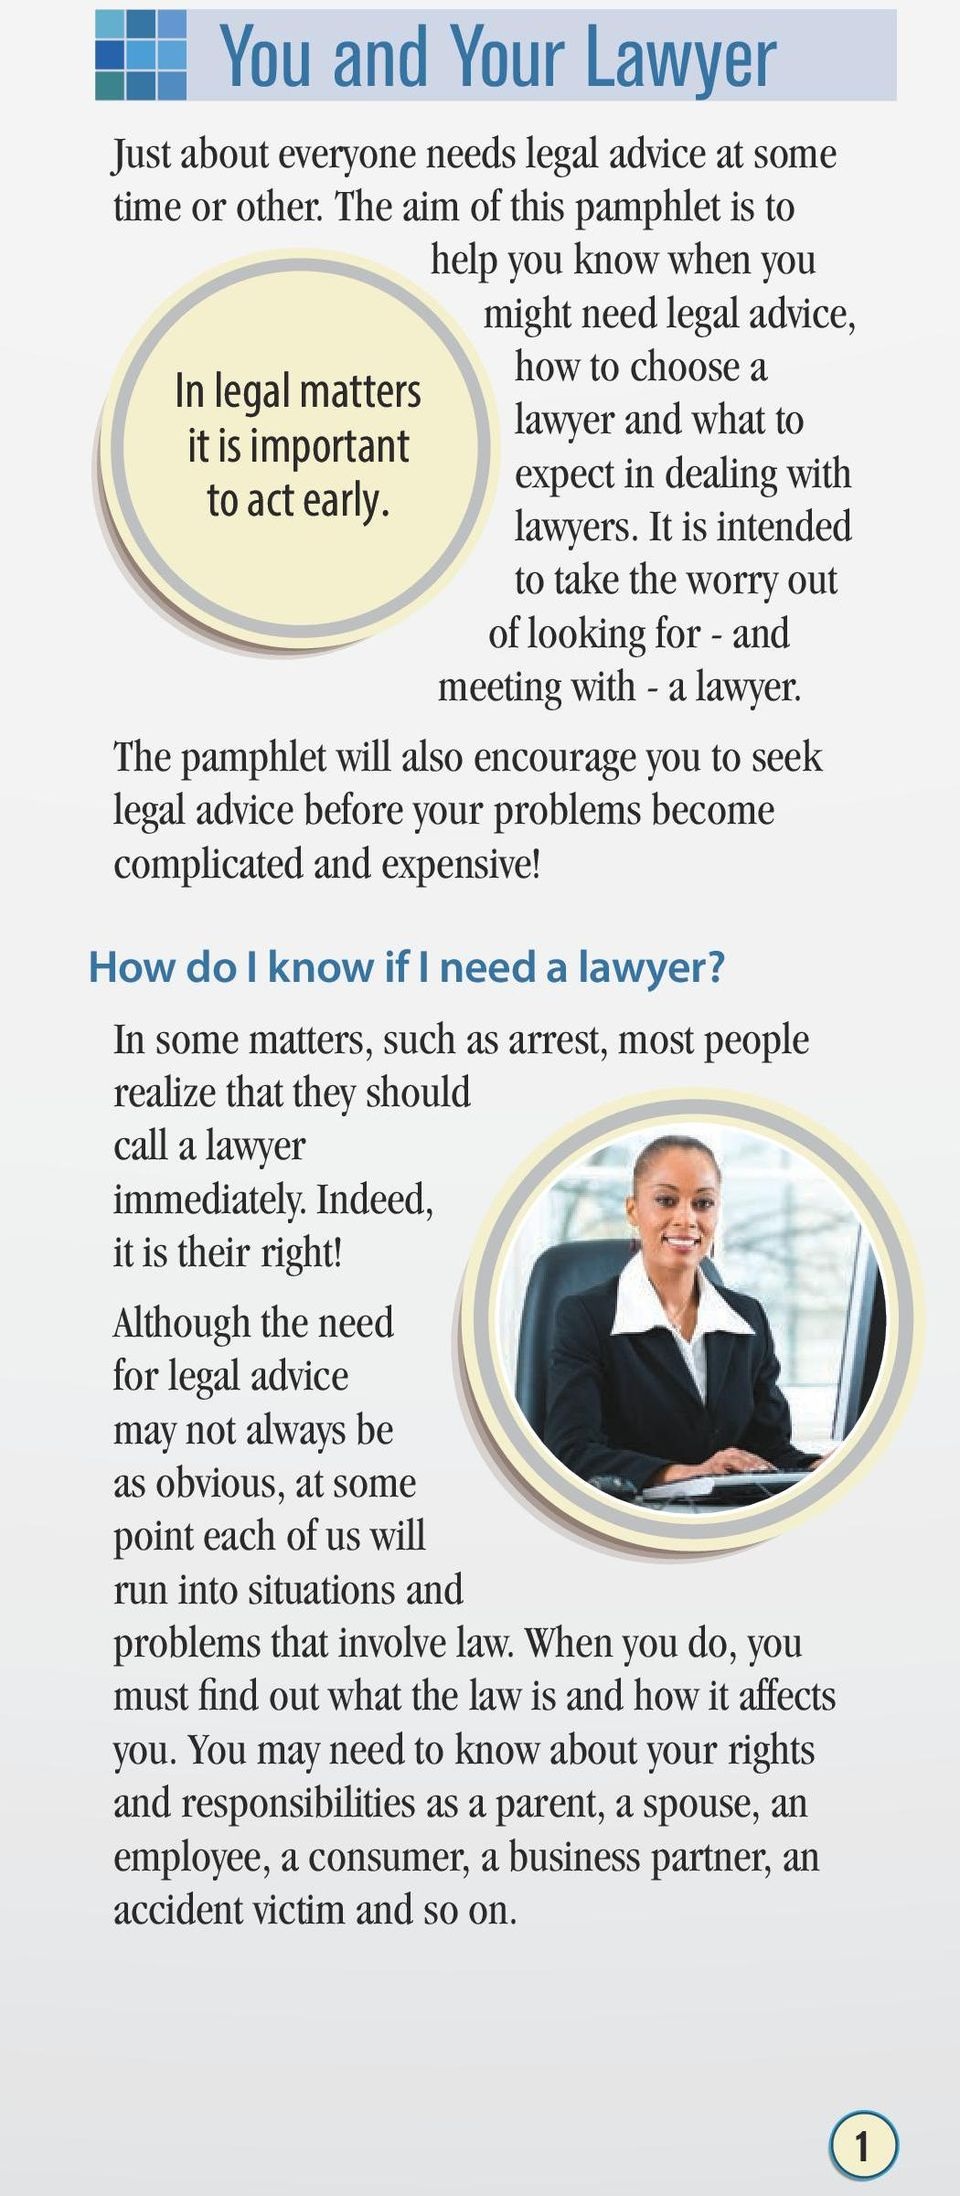 It is intended to take the worry out of looking for - and meeting with - a lawyer. The pamphlet will also encourage you to seek legal advice before your problems become complicated and expensive!